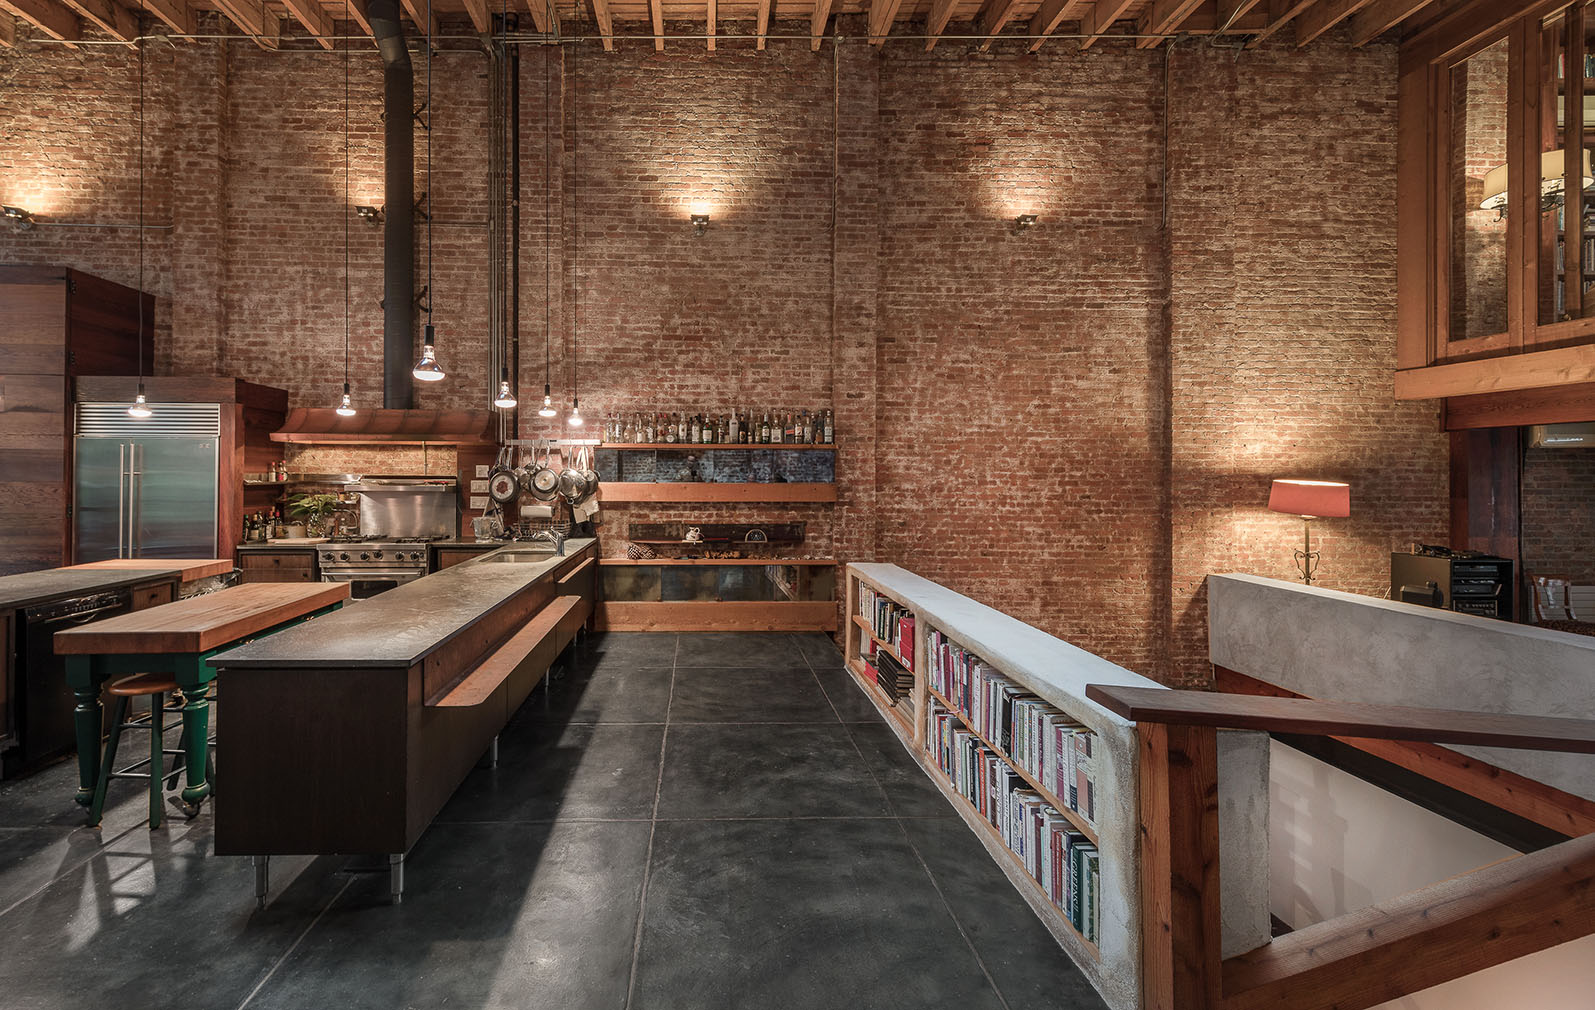 A set designer's warehouse studio is for sale in Manhattan